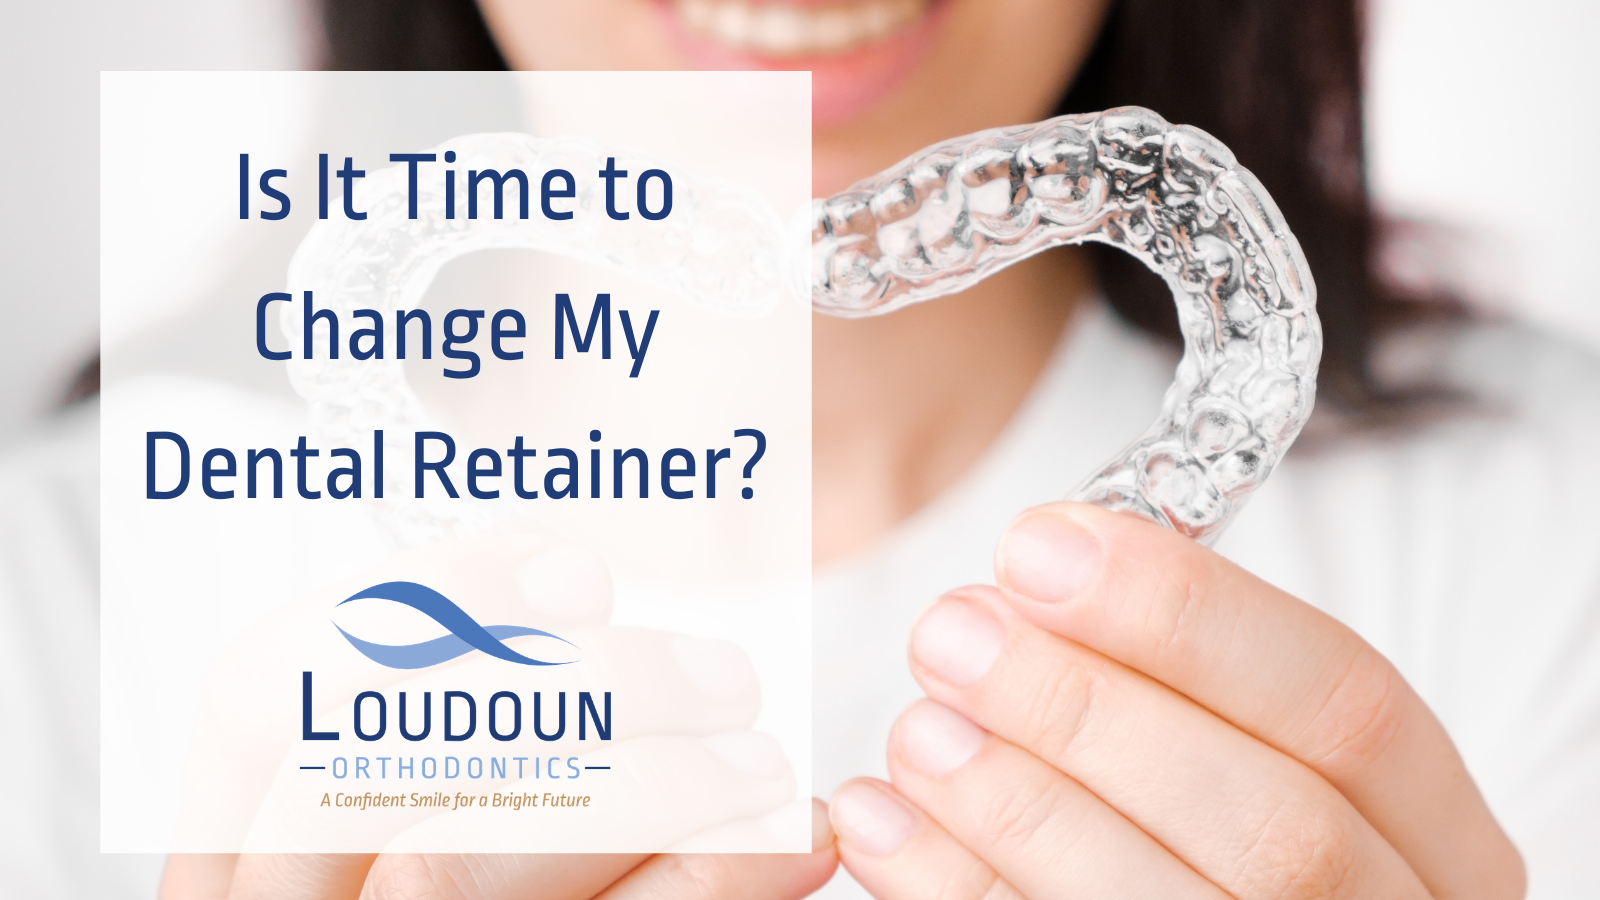 Is It Time to Change My Dental Retainer